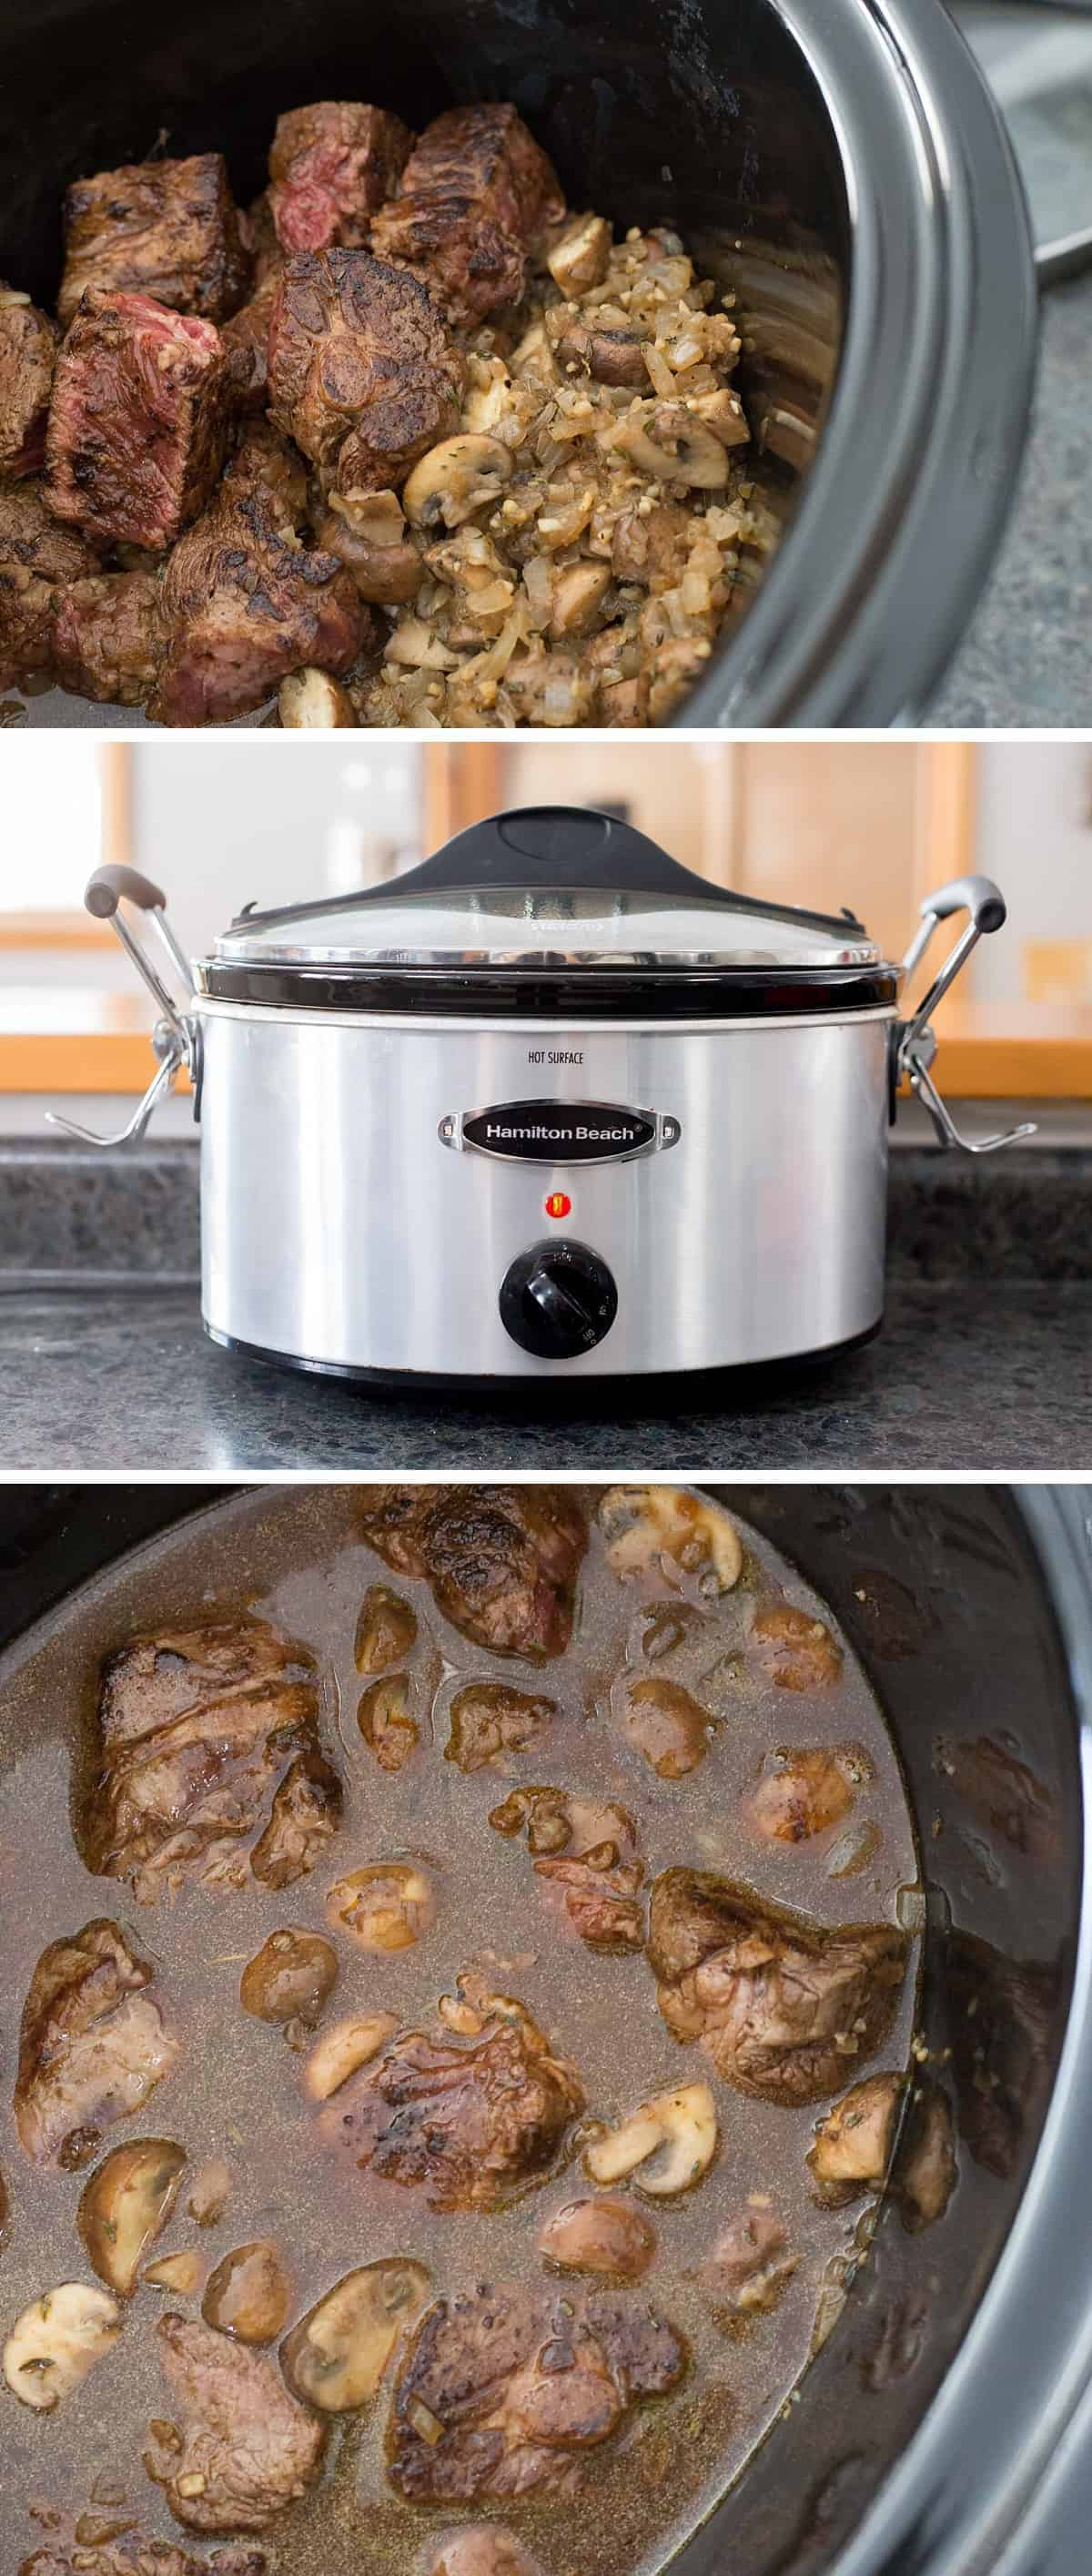 This slow cooker stroganoff is so simple and DELICIOUS, perfect for a chilly day. Just pop it in the crock pot and come home to a delicious family meal. #recipe #homemadegoodness #slowcooker #crockpot *My family loves Beef Stroganoff. These thick egg noodles are the best!